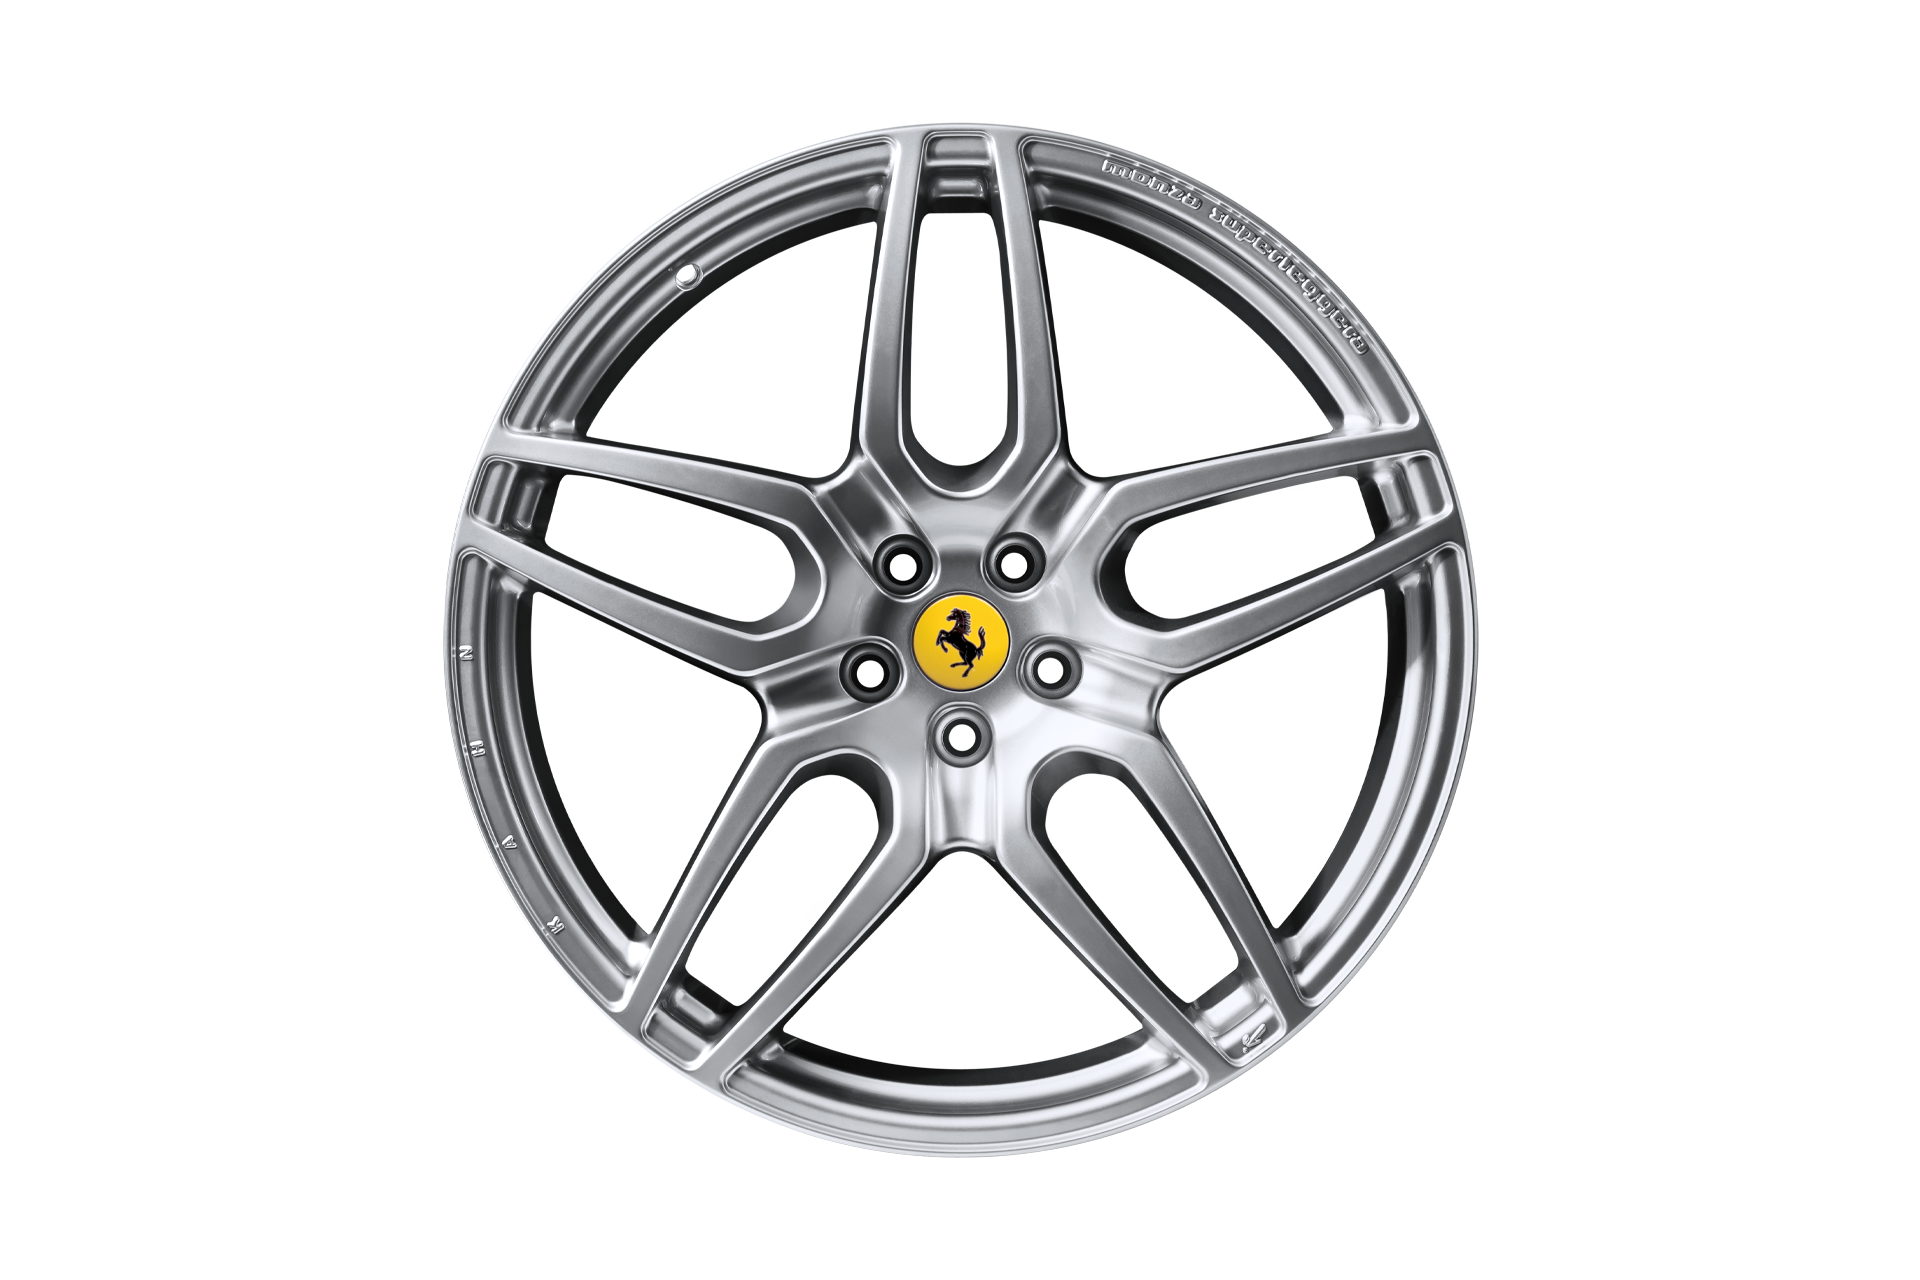 Ferrari 360 Monza Superleggera Light Alloy Wheels by Kahn - Image 4108